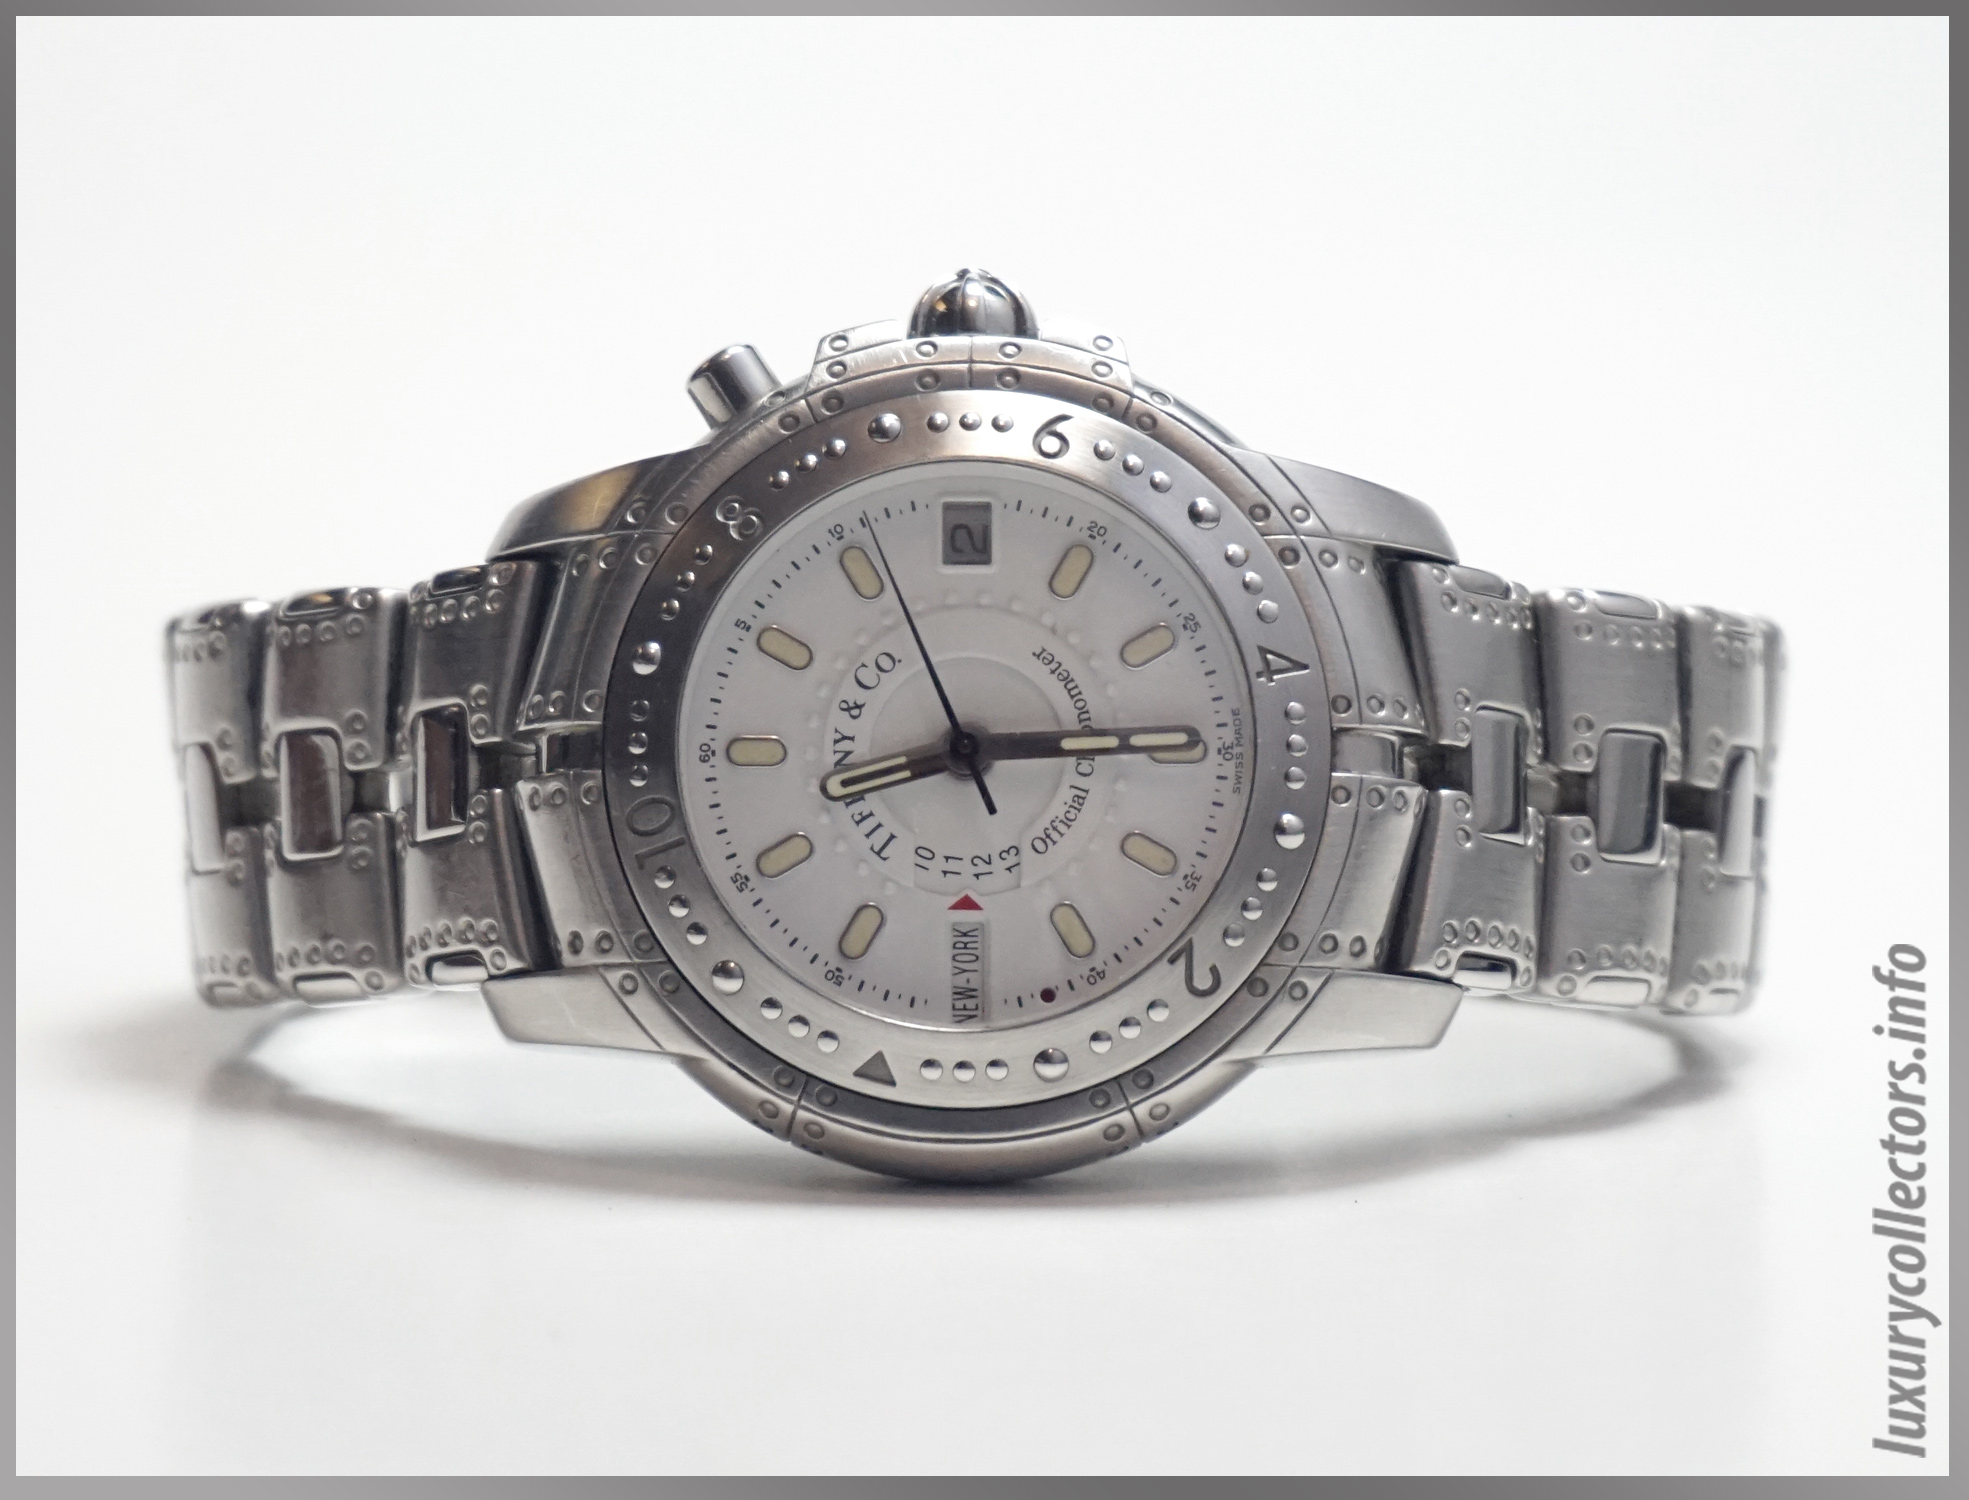 Tiffany & Co. Streamerica World Time Automatic Chronometer Wristwatch in all stainless steel and white face.